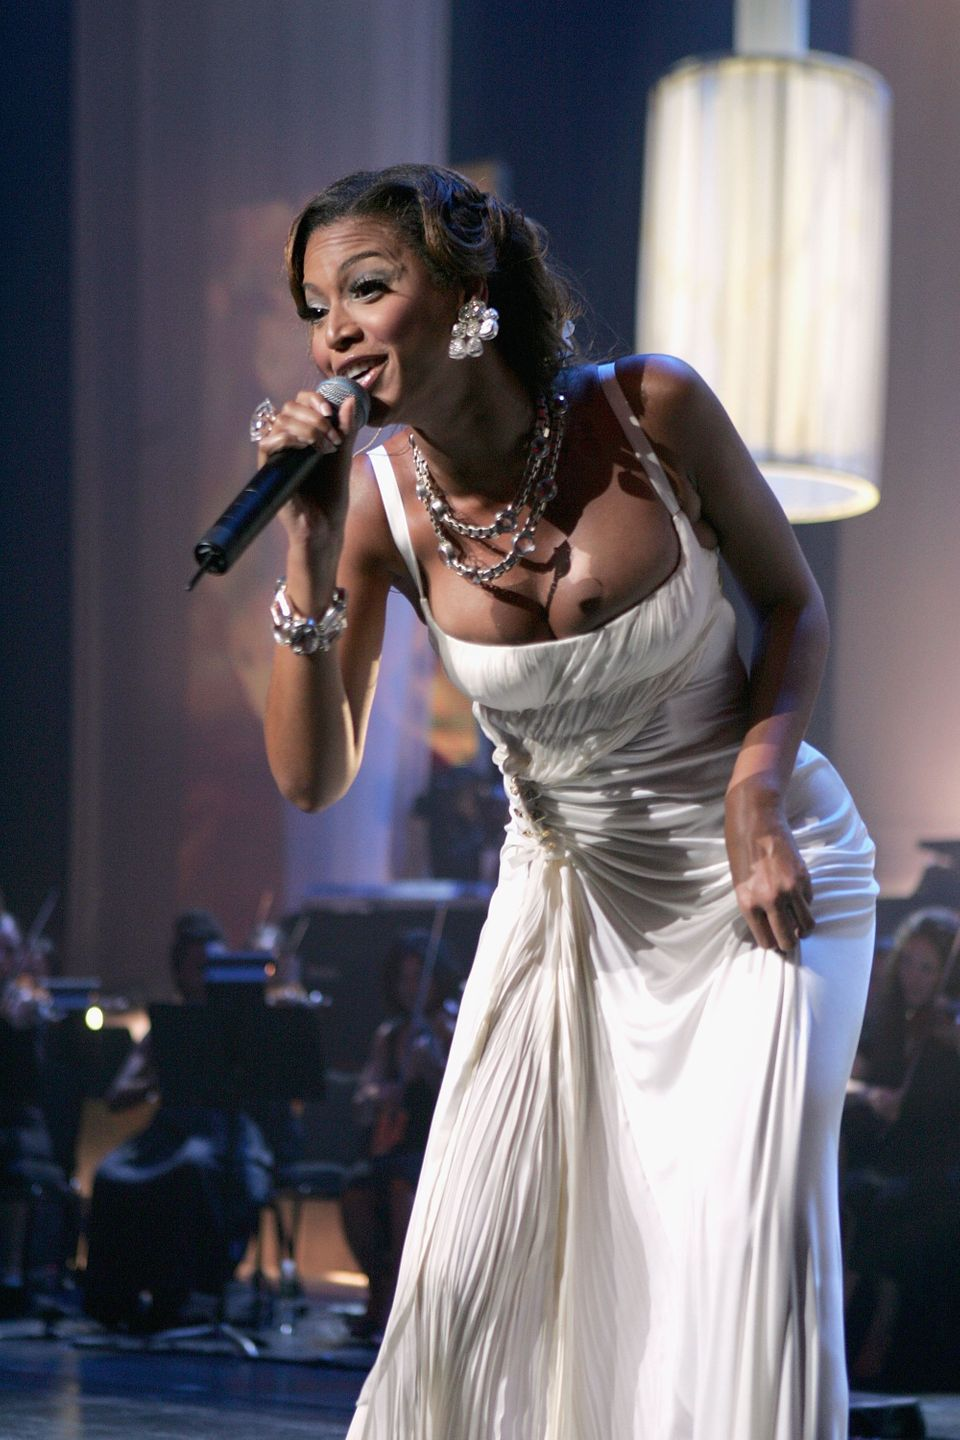 Singer Beyonce Knowles performs at a concert to celebrate the 10th anniversary of Jay-Z's first album, 'Reasonable Doubt' at